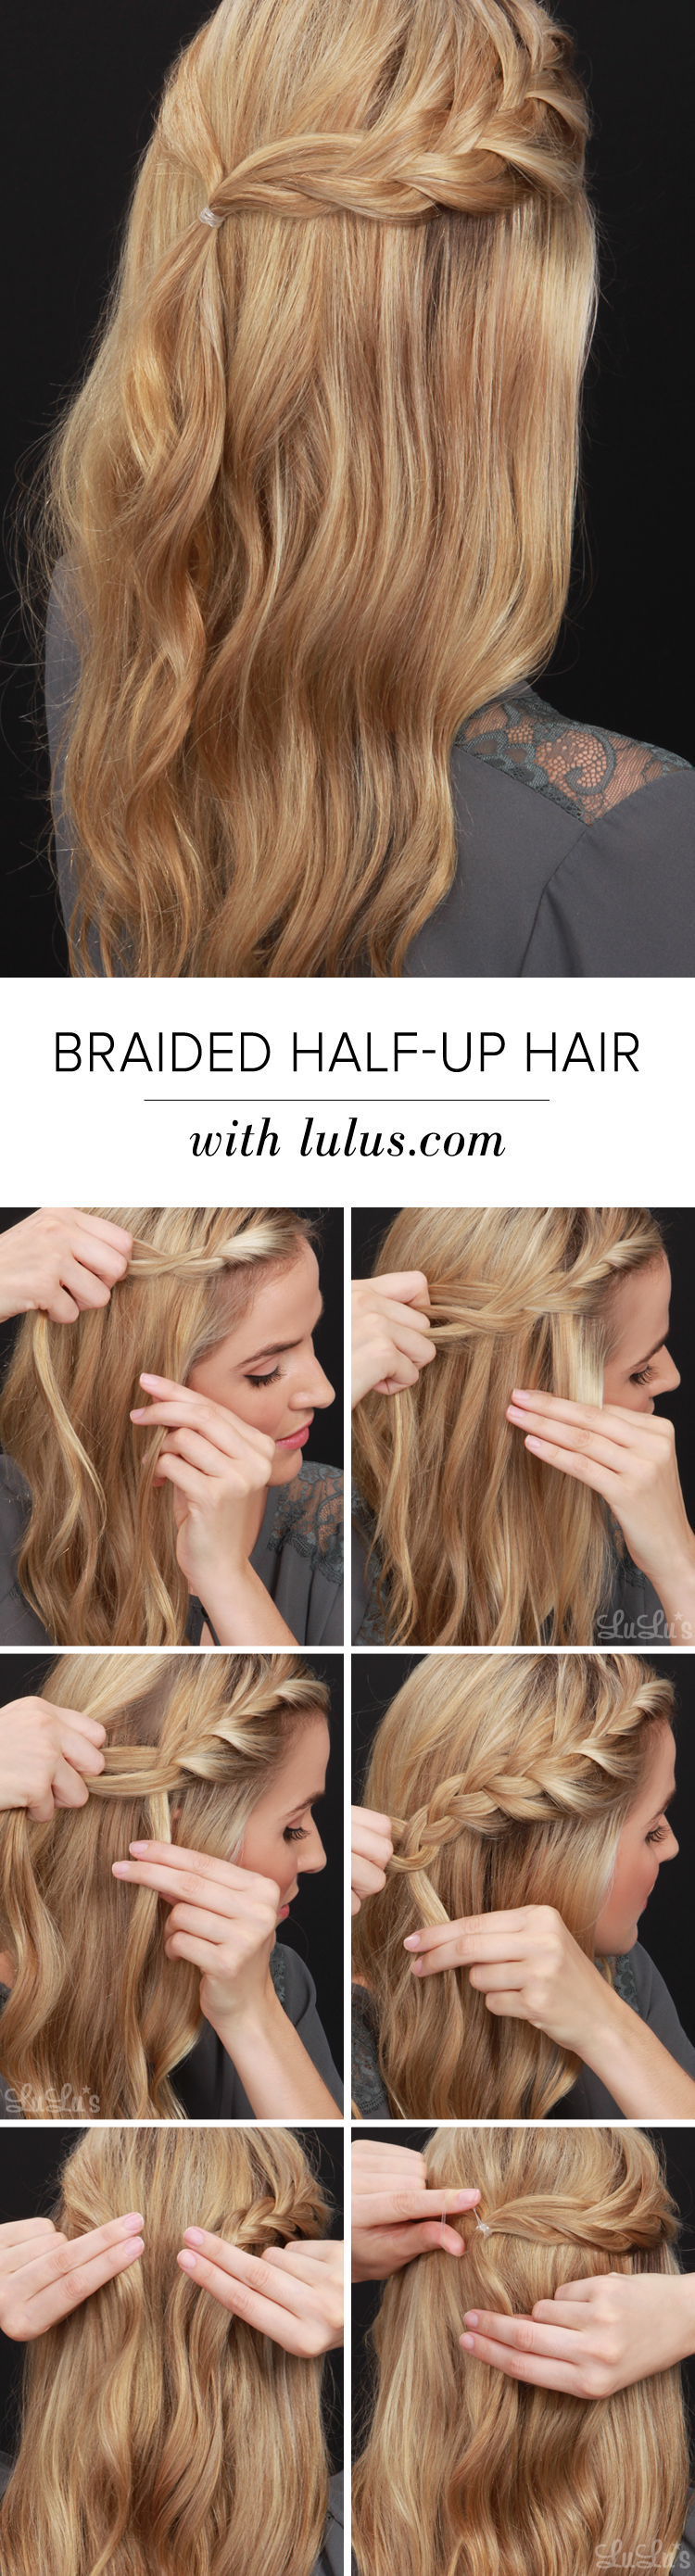 half-up braided hair